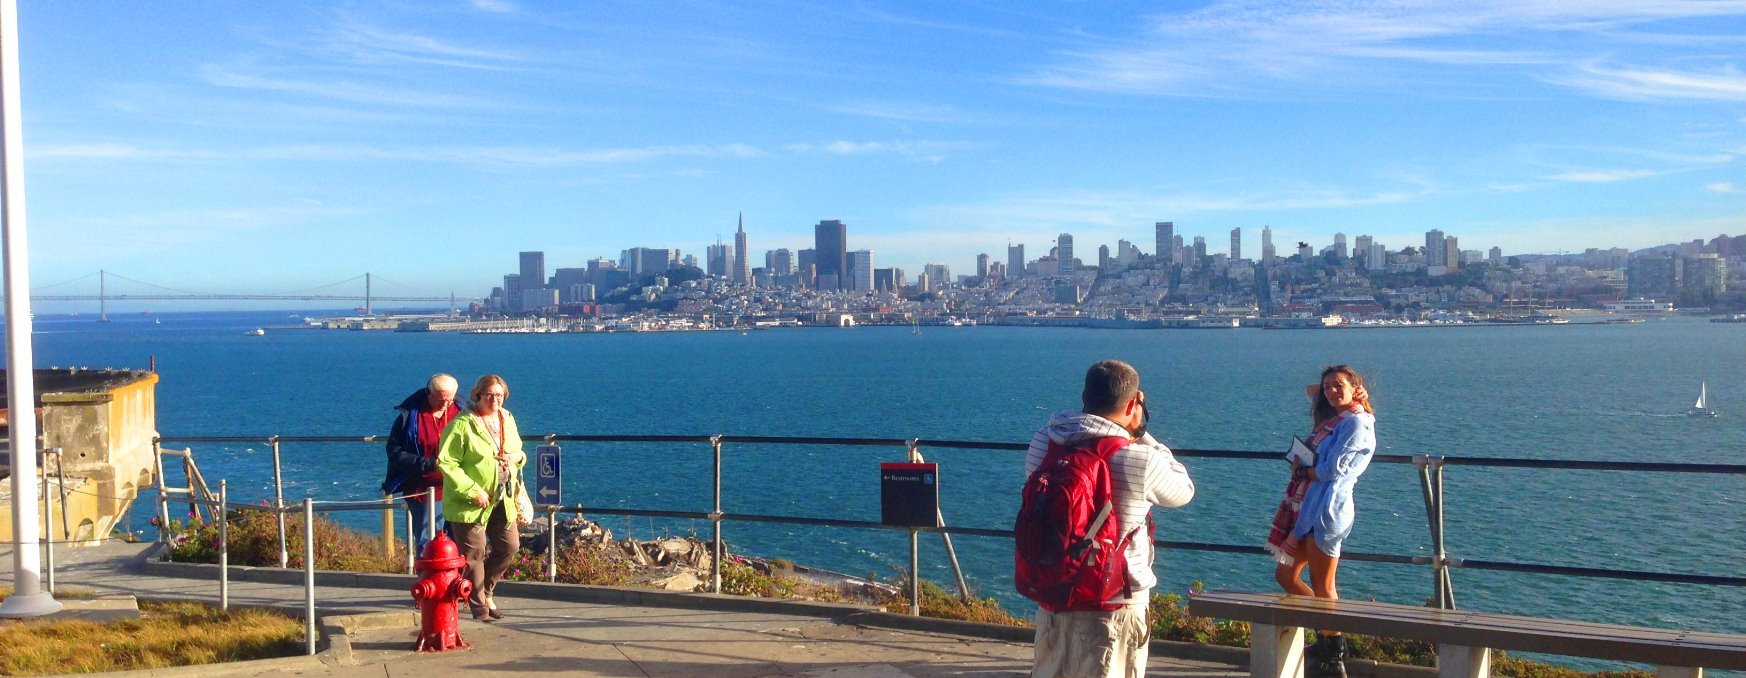 alcatraz_island_prison_tours_and_last_minute_ferry_tickets